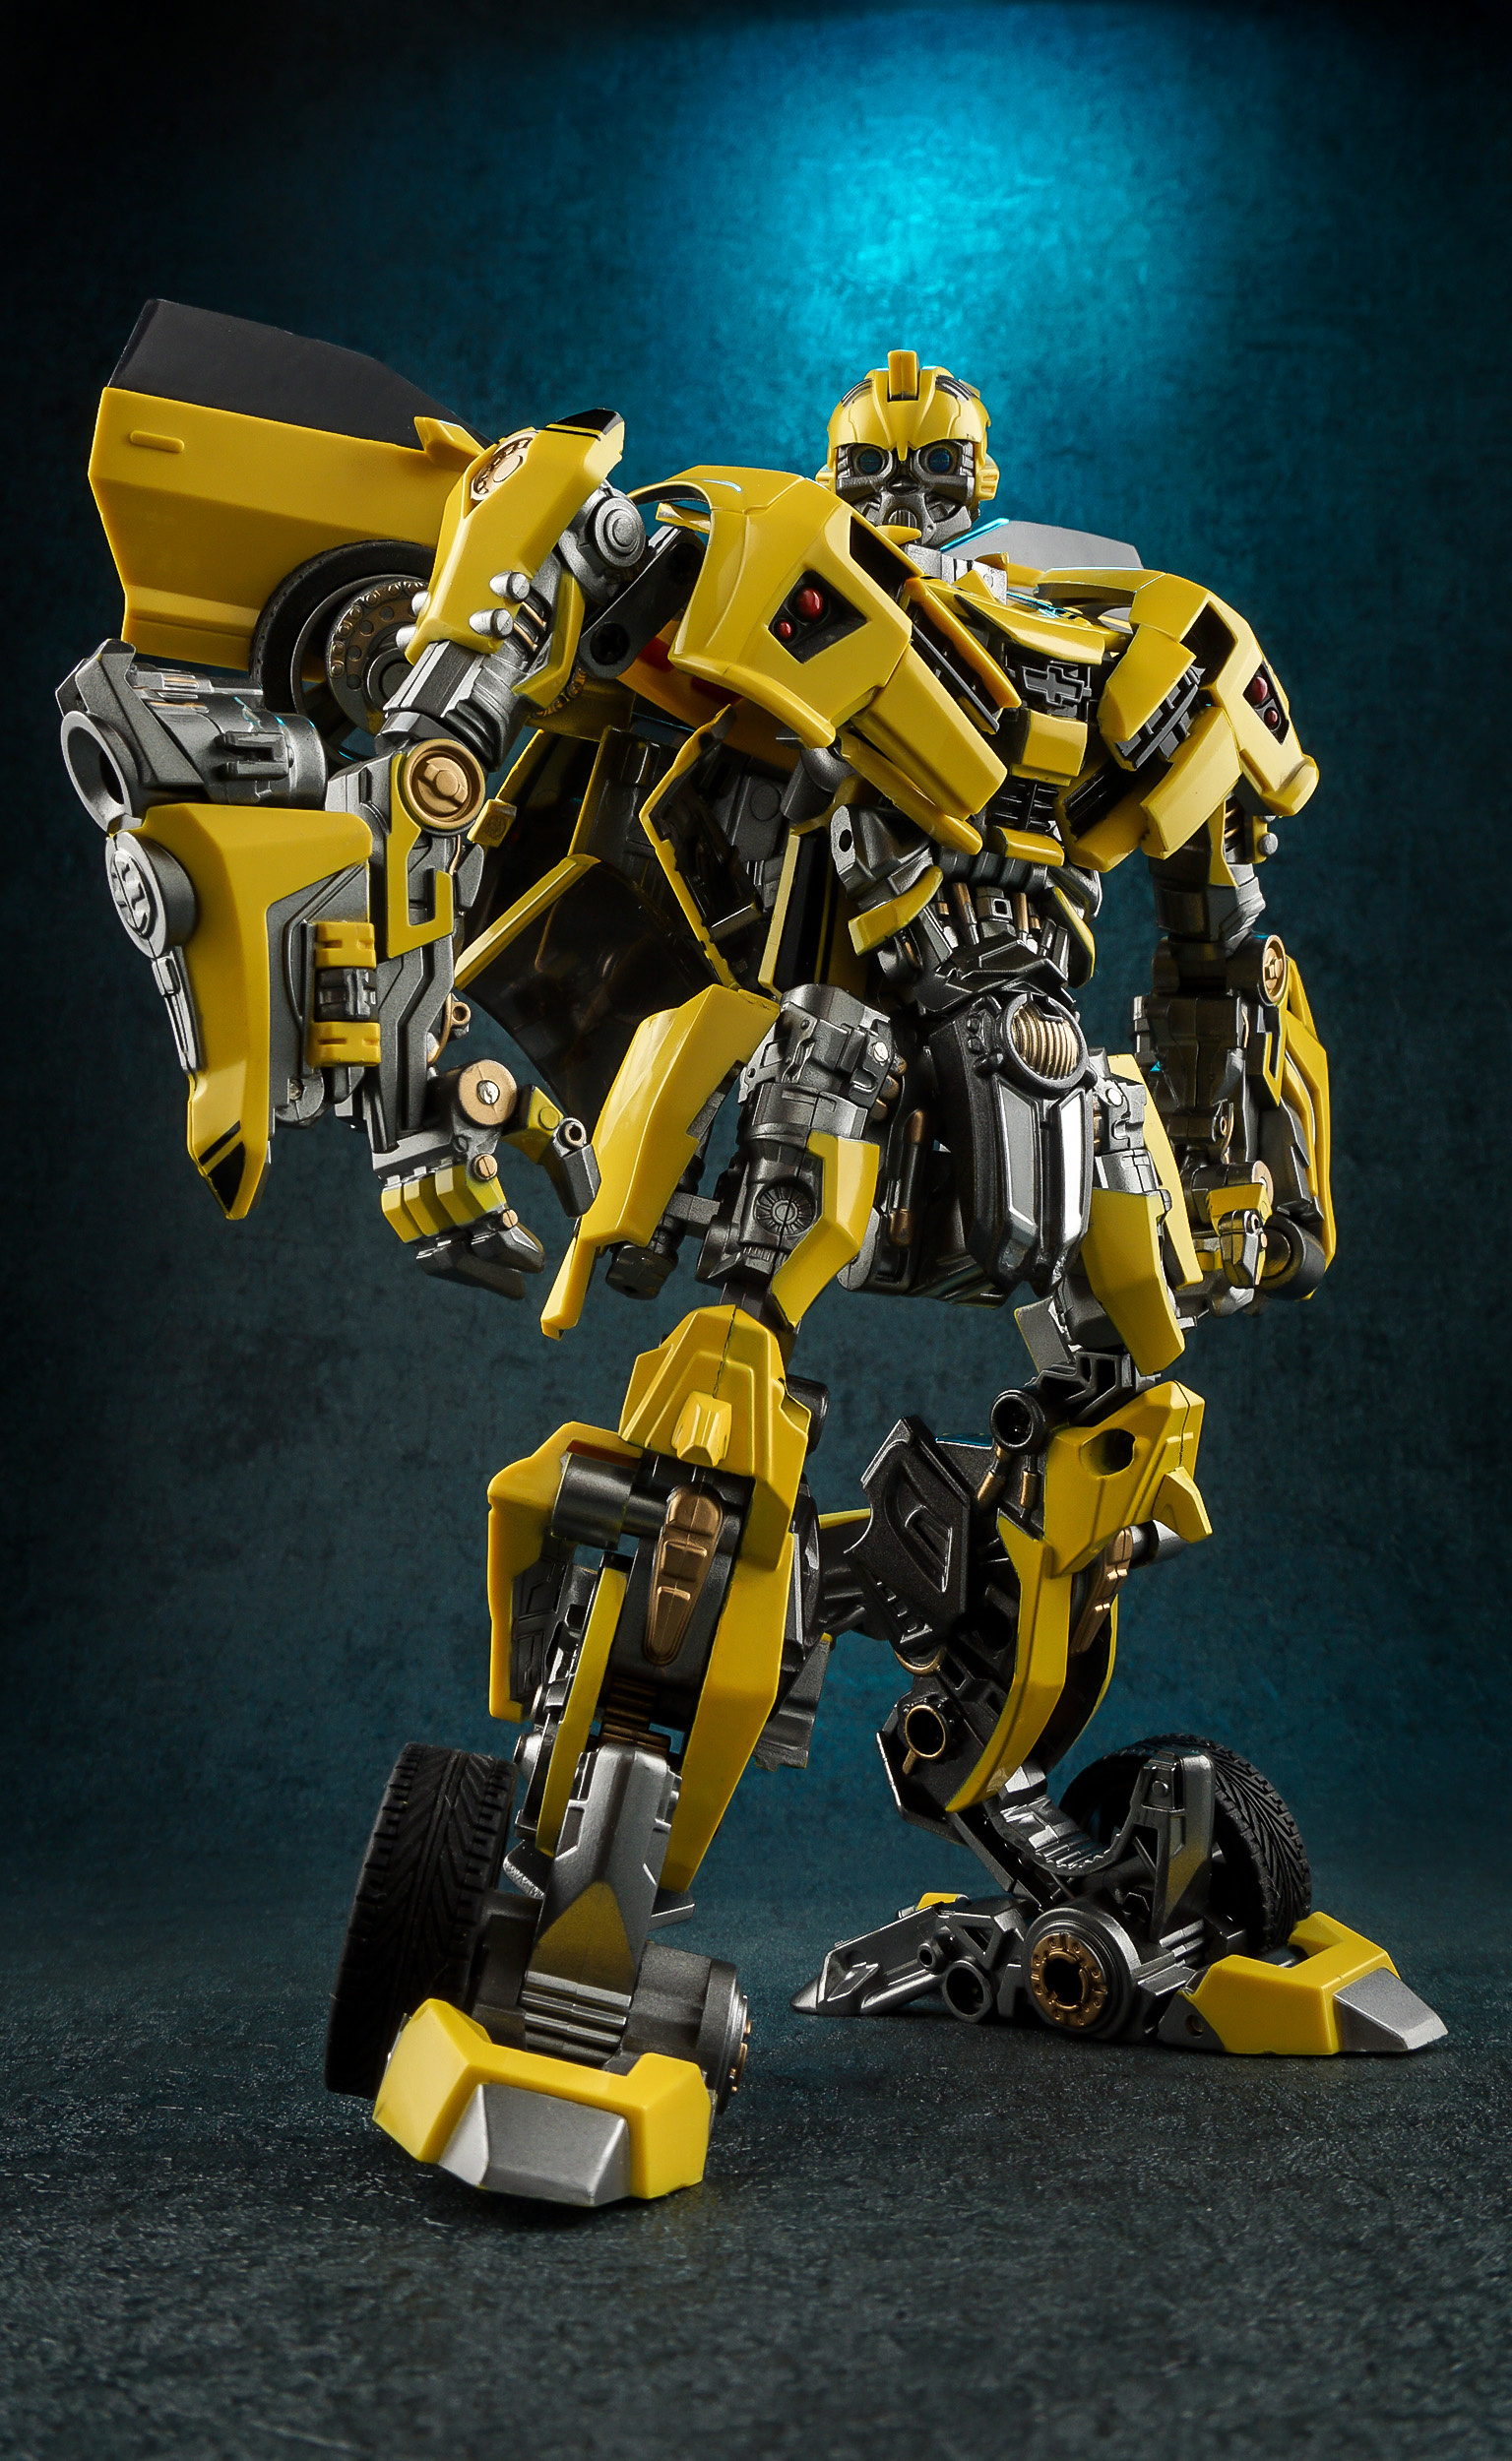 Toy Car Wallpaper Wei Jiang Robot Force Battle Hornet Mp Movie Bumblebee